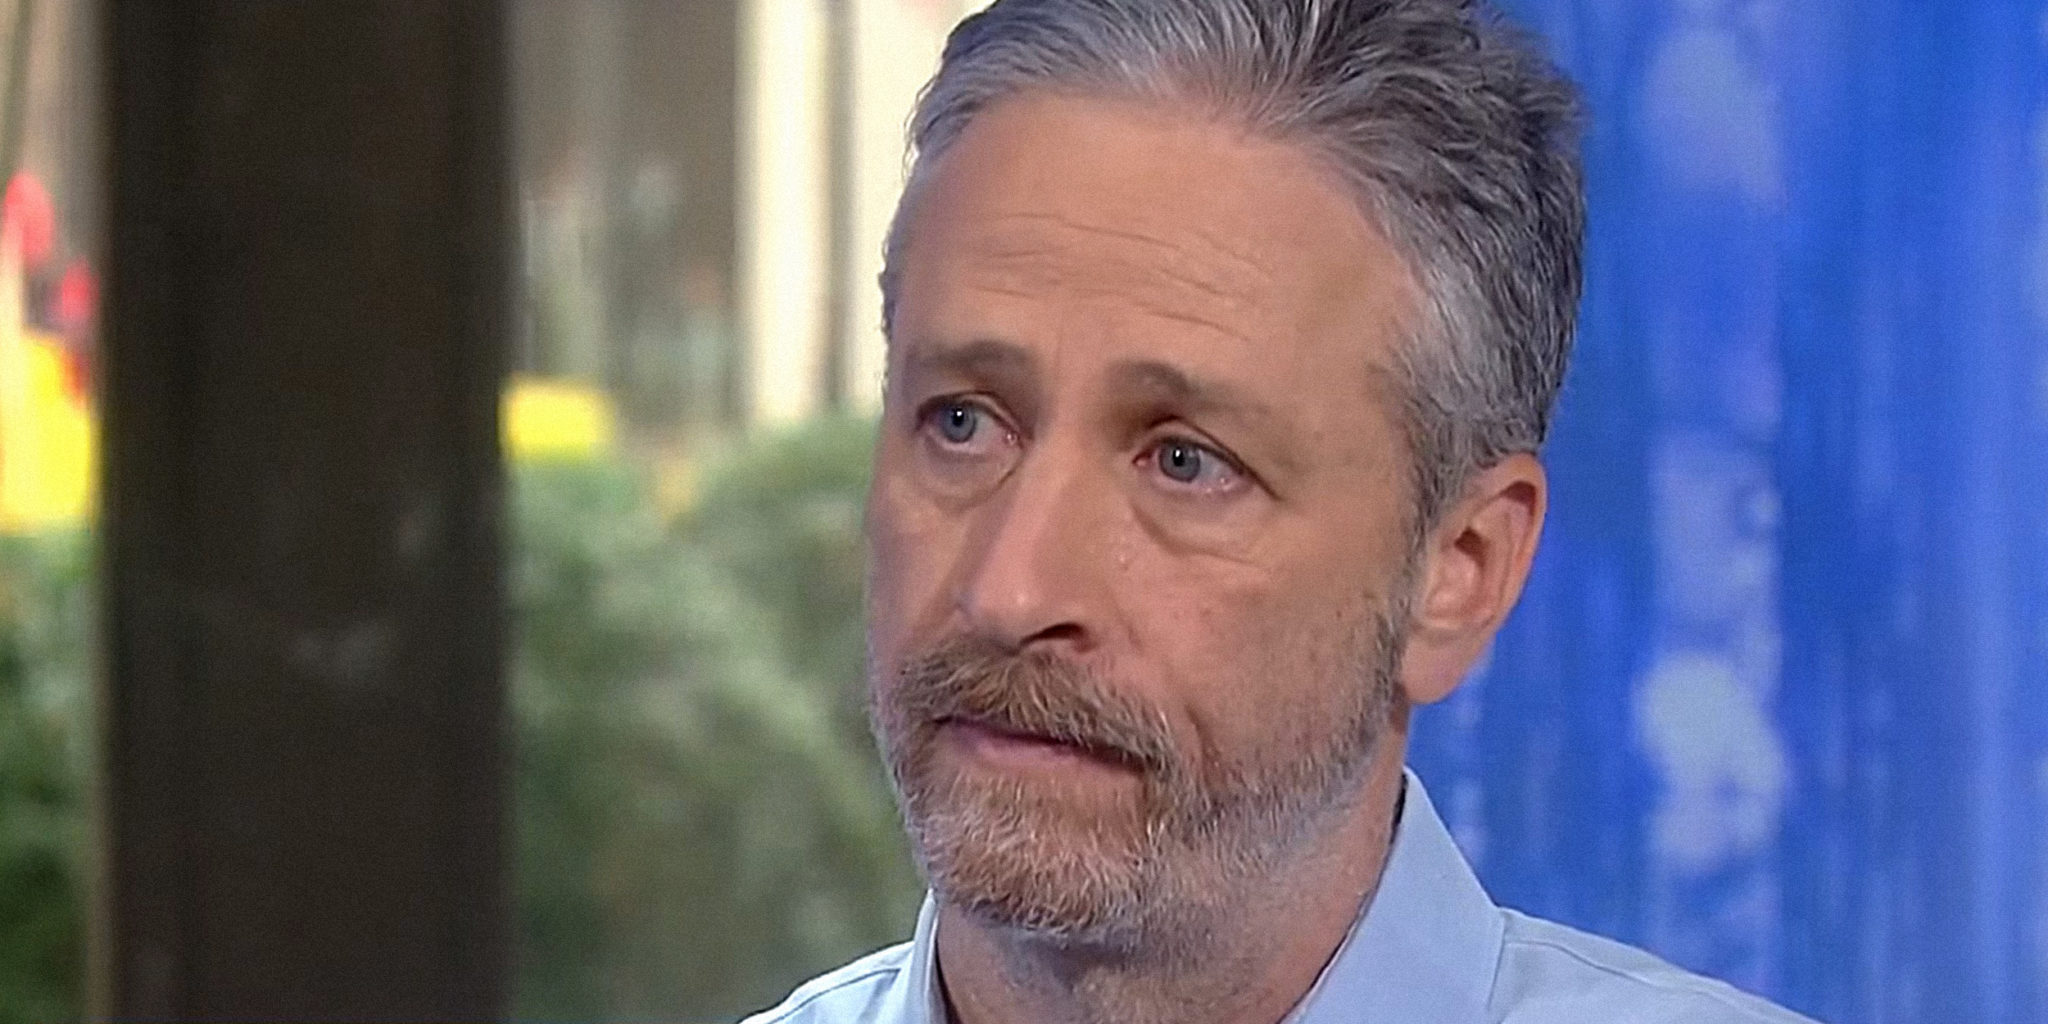 Jon Stewart says people like Louis CK are endemic in comedy